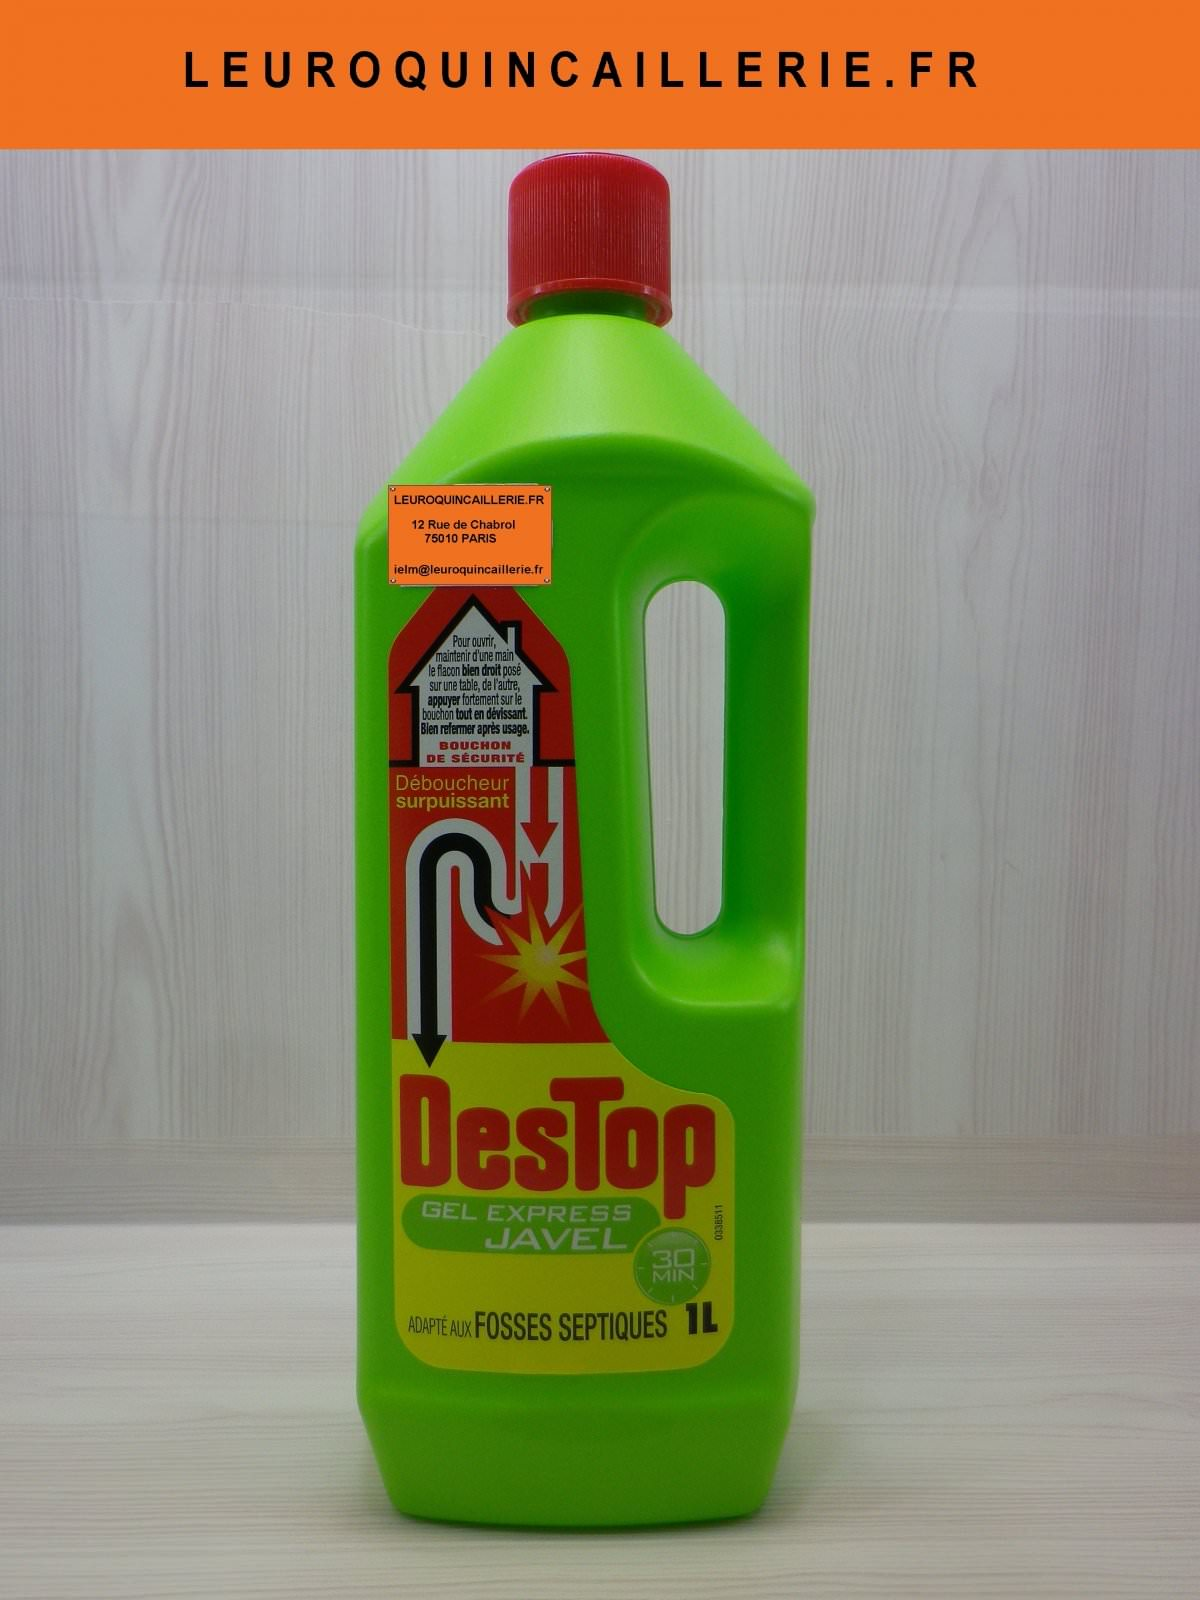 Destop gel expresse Javel